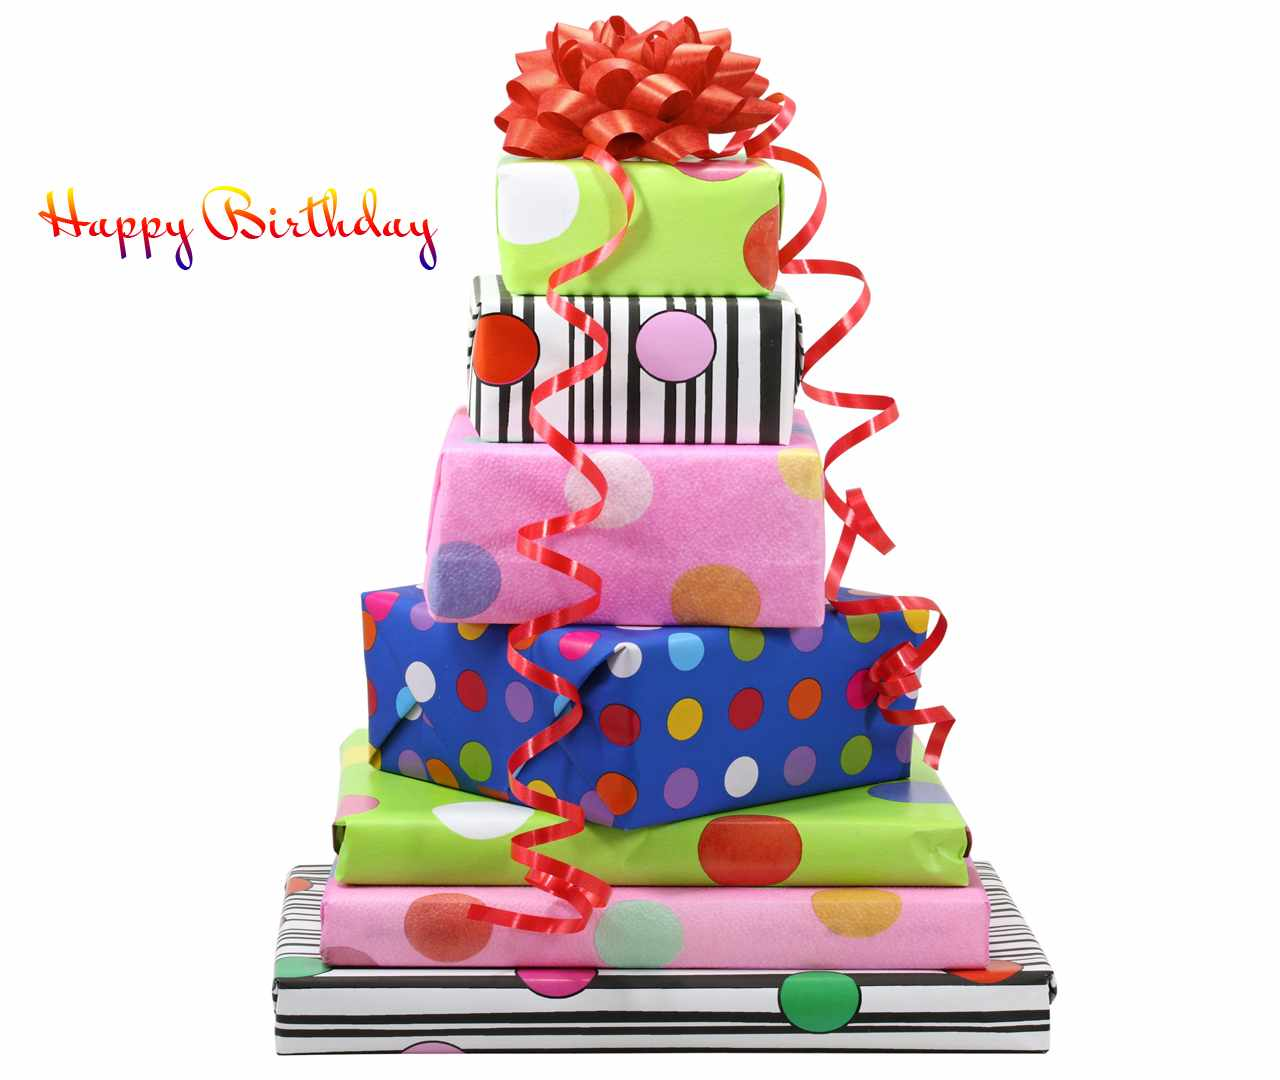 happy birthday gift photo download ; di45qagjT